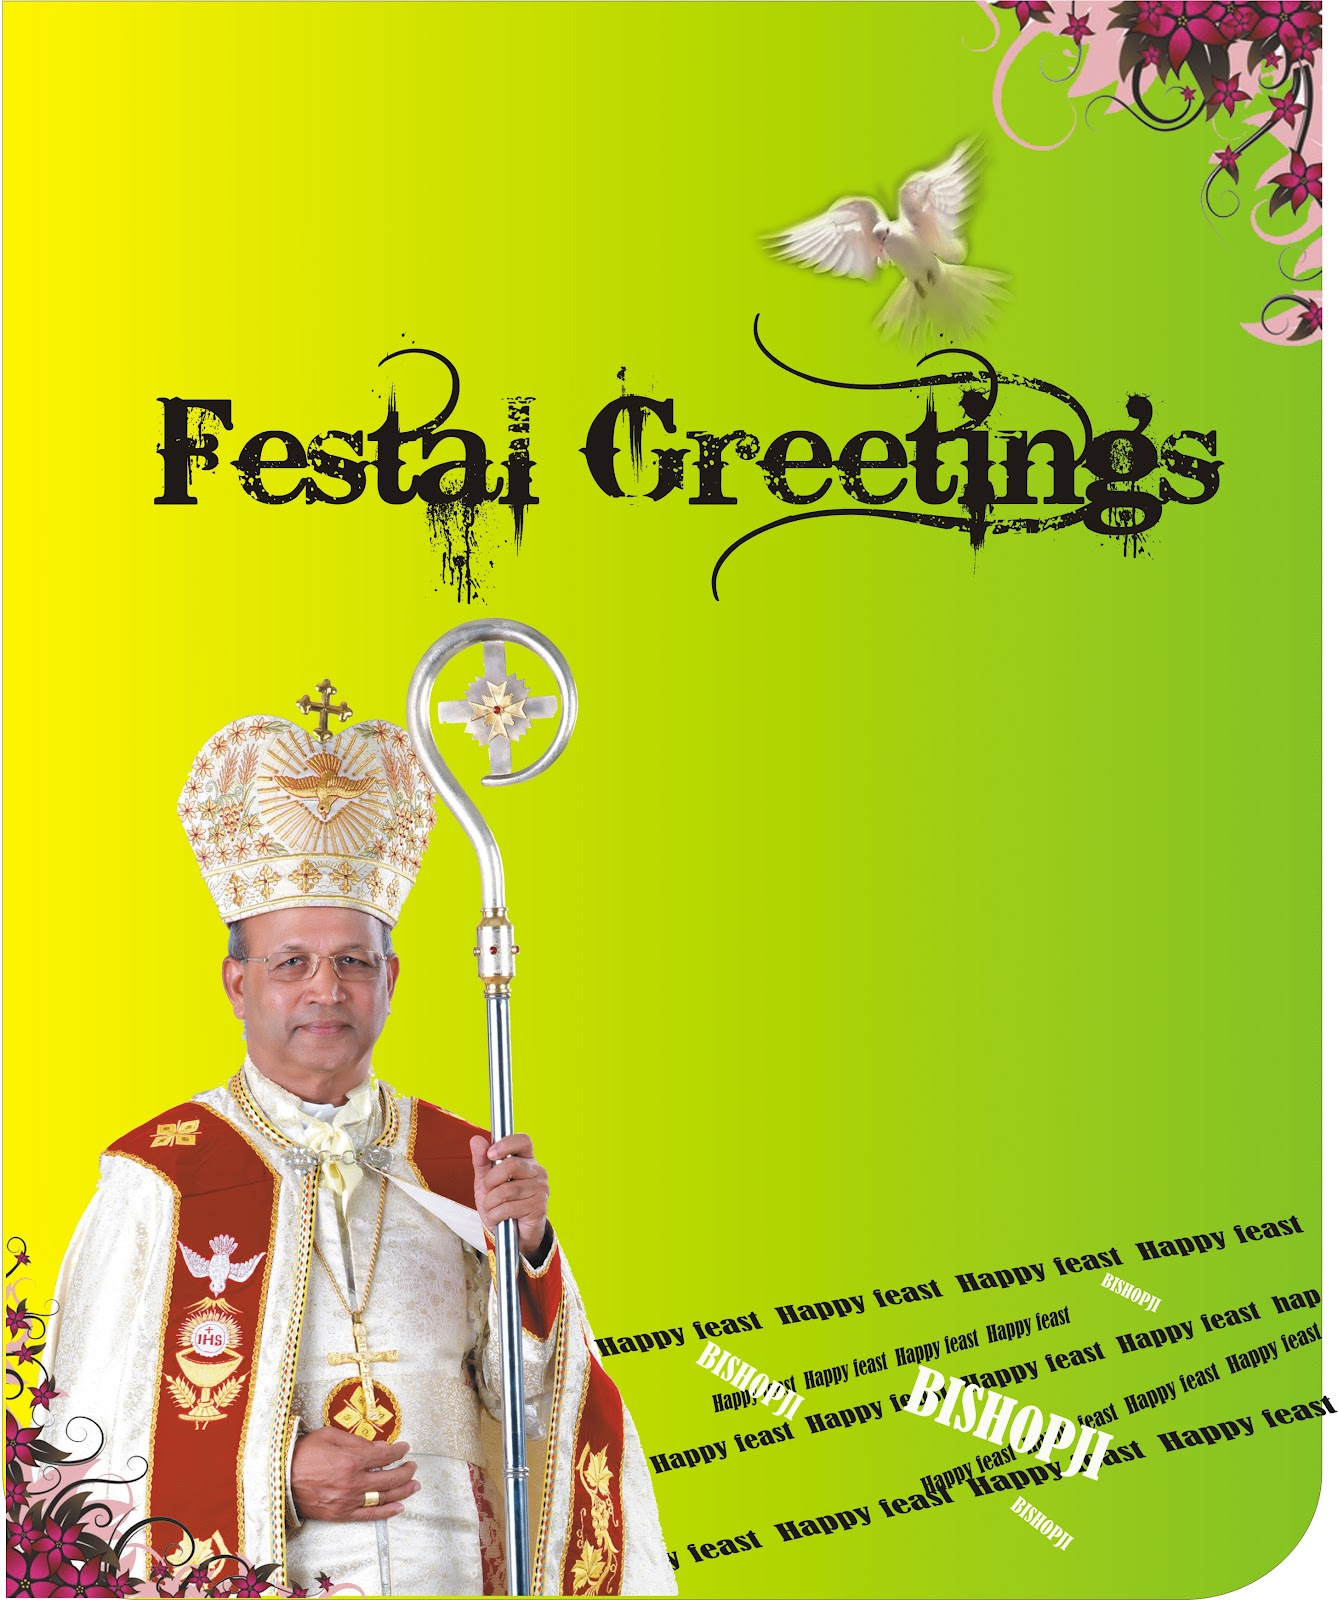 Diocese of sagar festal greetings to our dear loving bishop festal greetings to our dear loving bishop anthony chirayath kristyandbryce Images